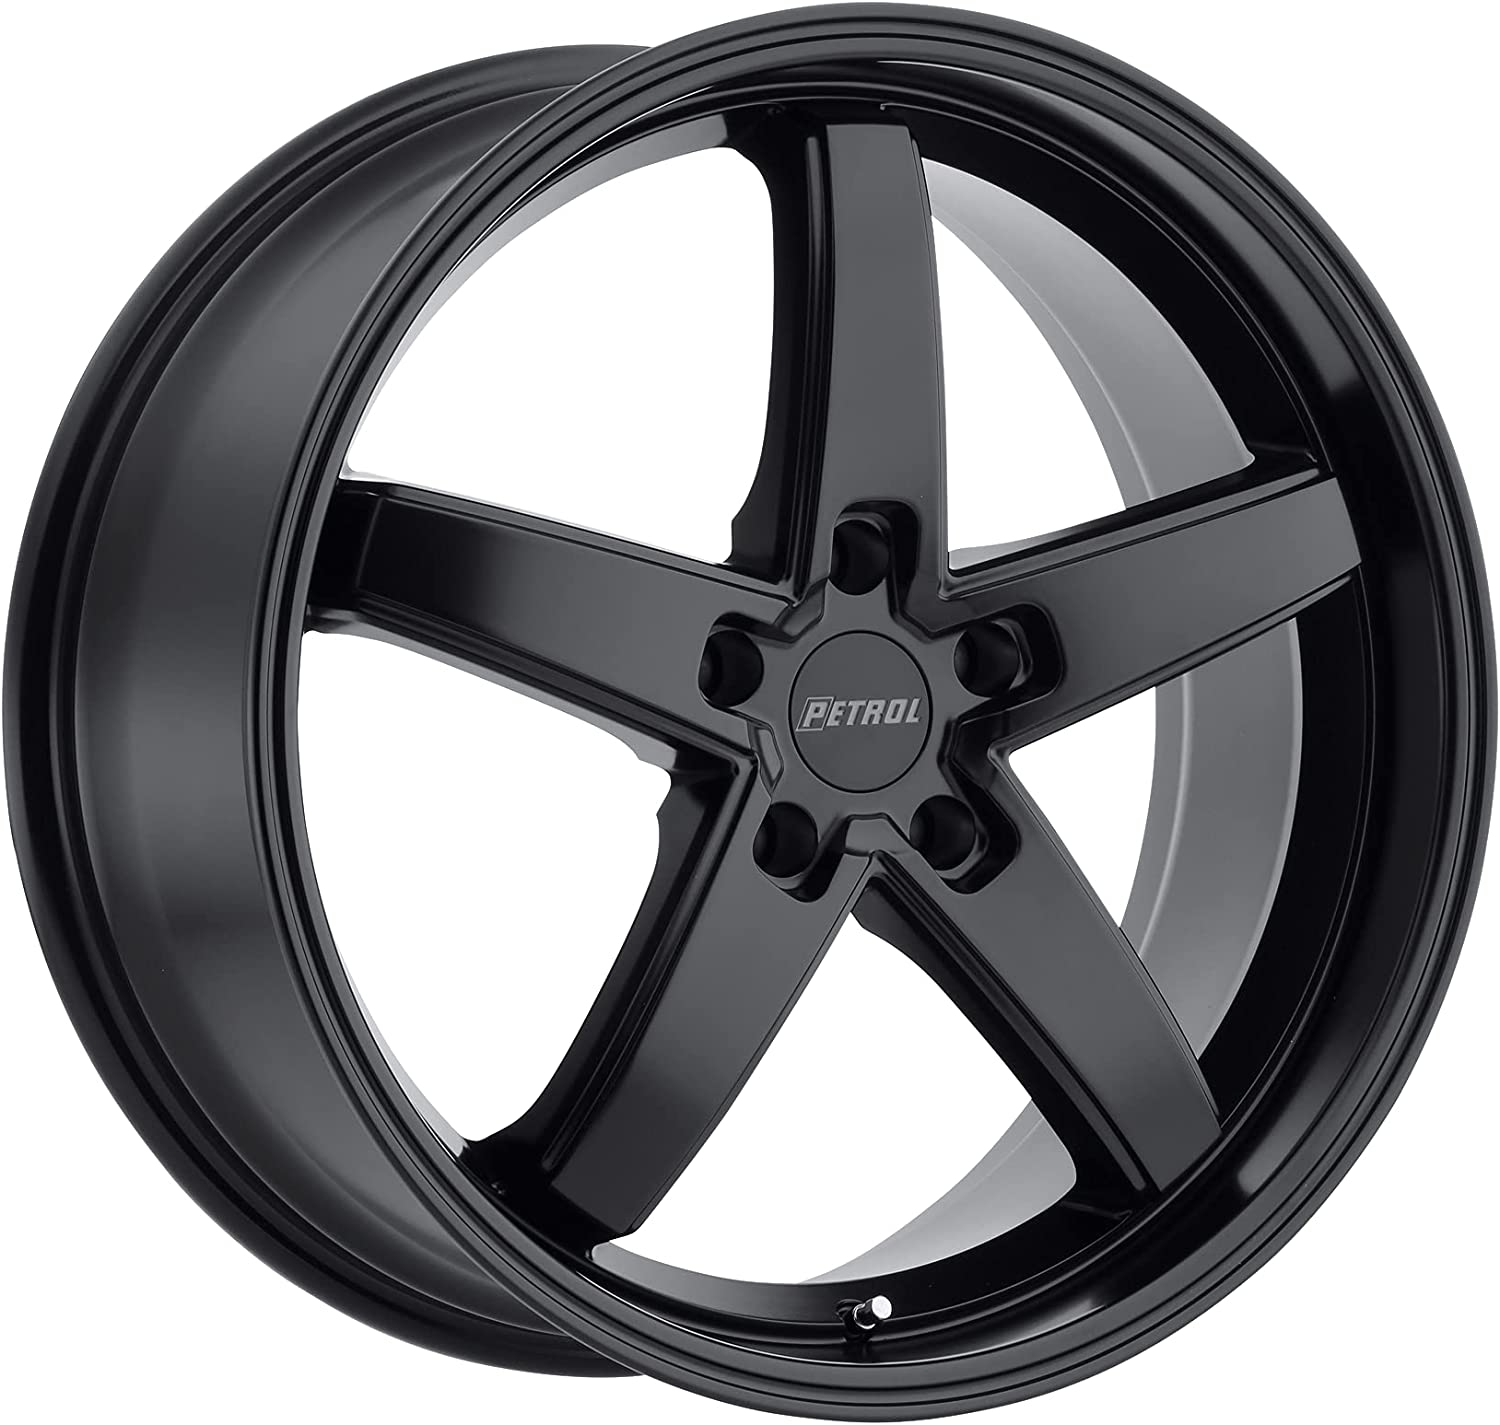 PEP1B 19X8 5X4.25 Limited Special Popular products Price M-BLK CUSTOM WHEEL 40MM